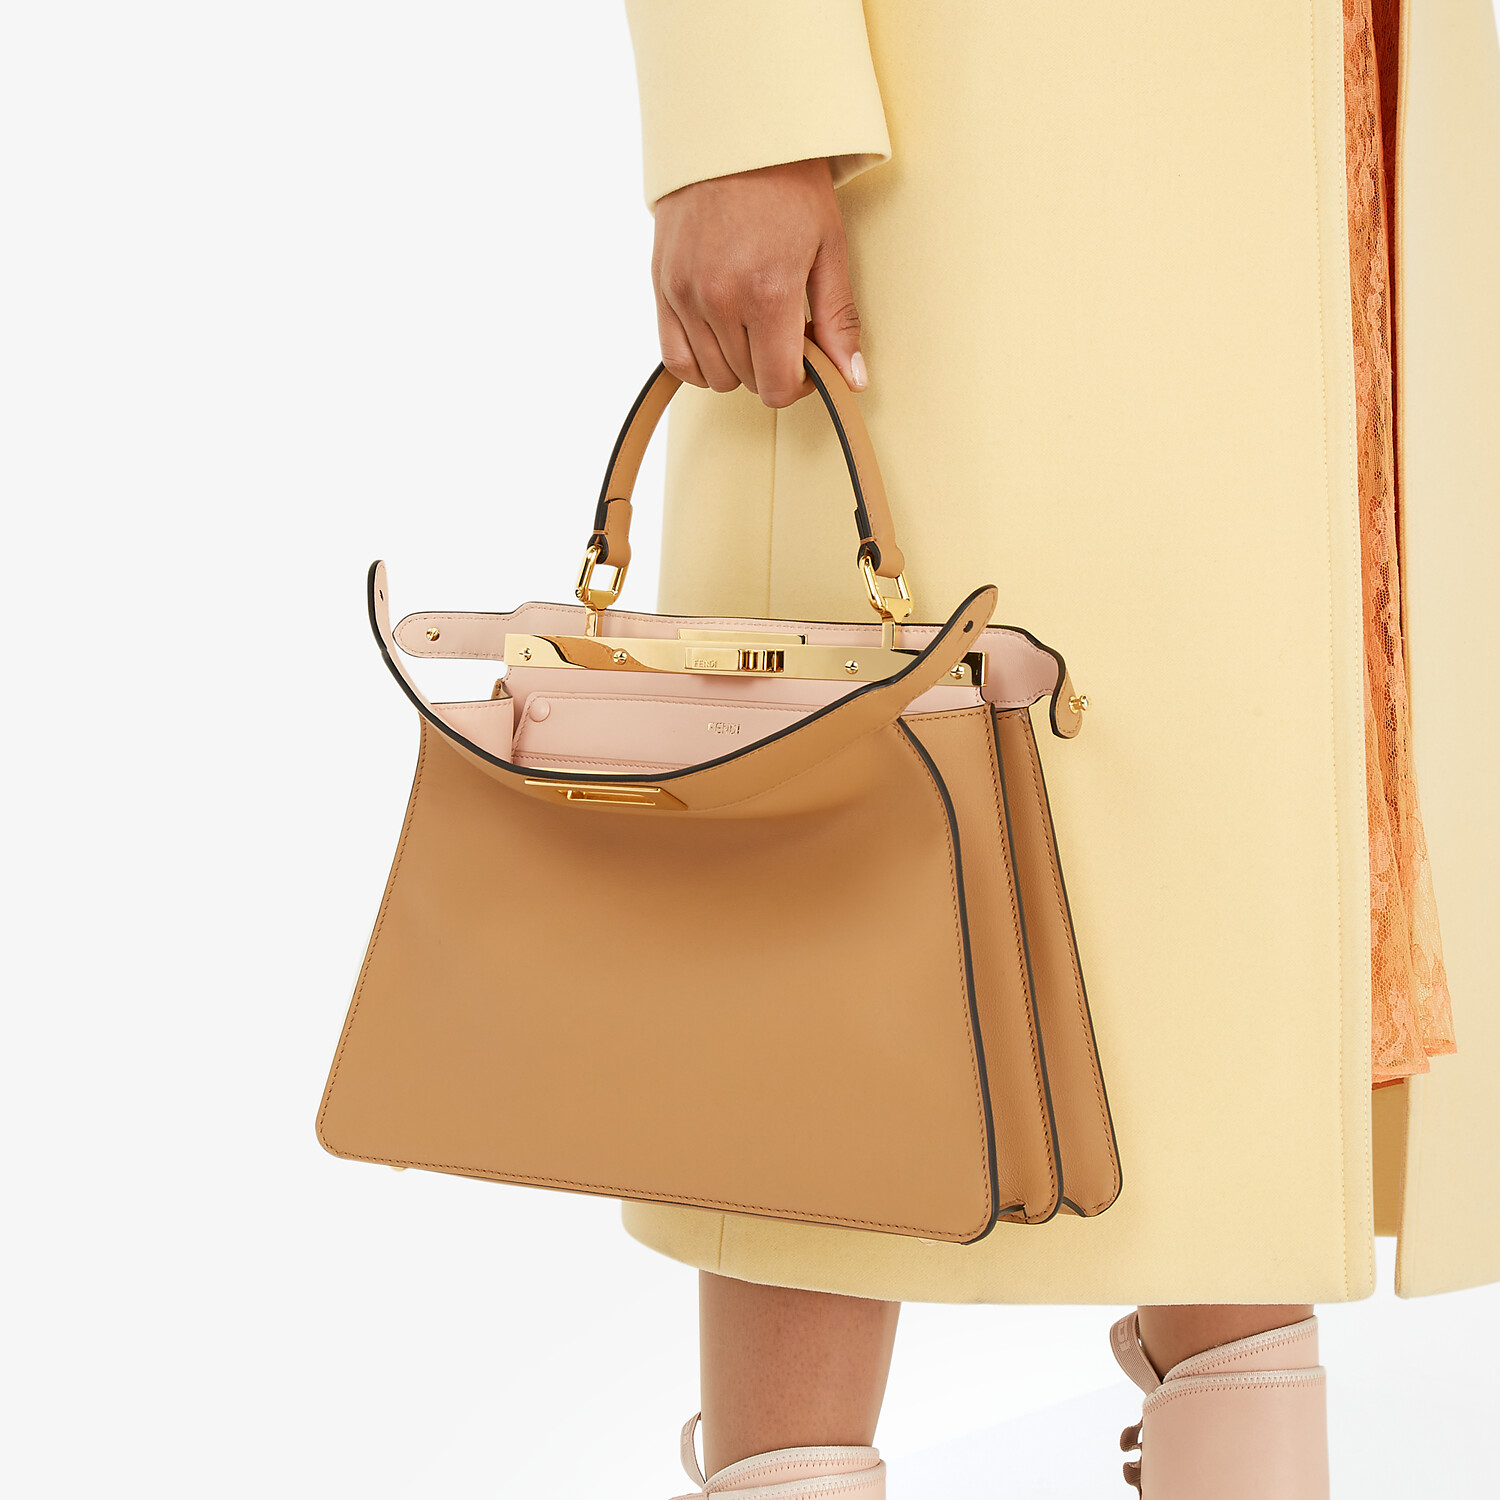 FENDI PEEKABOO ISEEU MEDIUM - Beige leather bag - view 2 detail